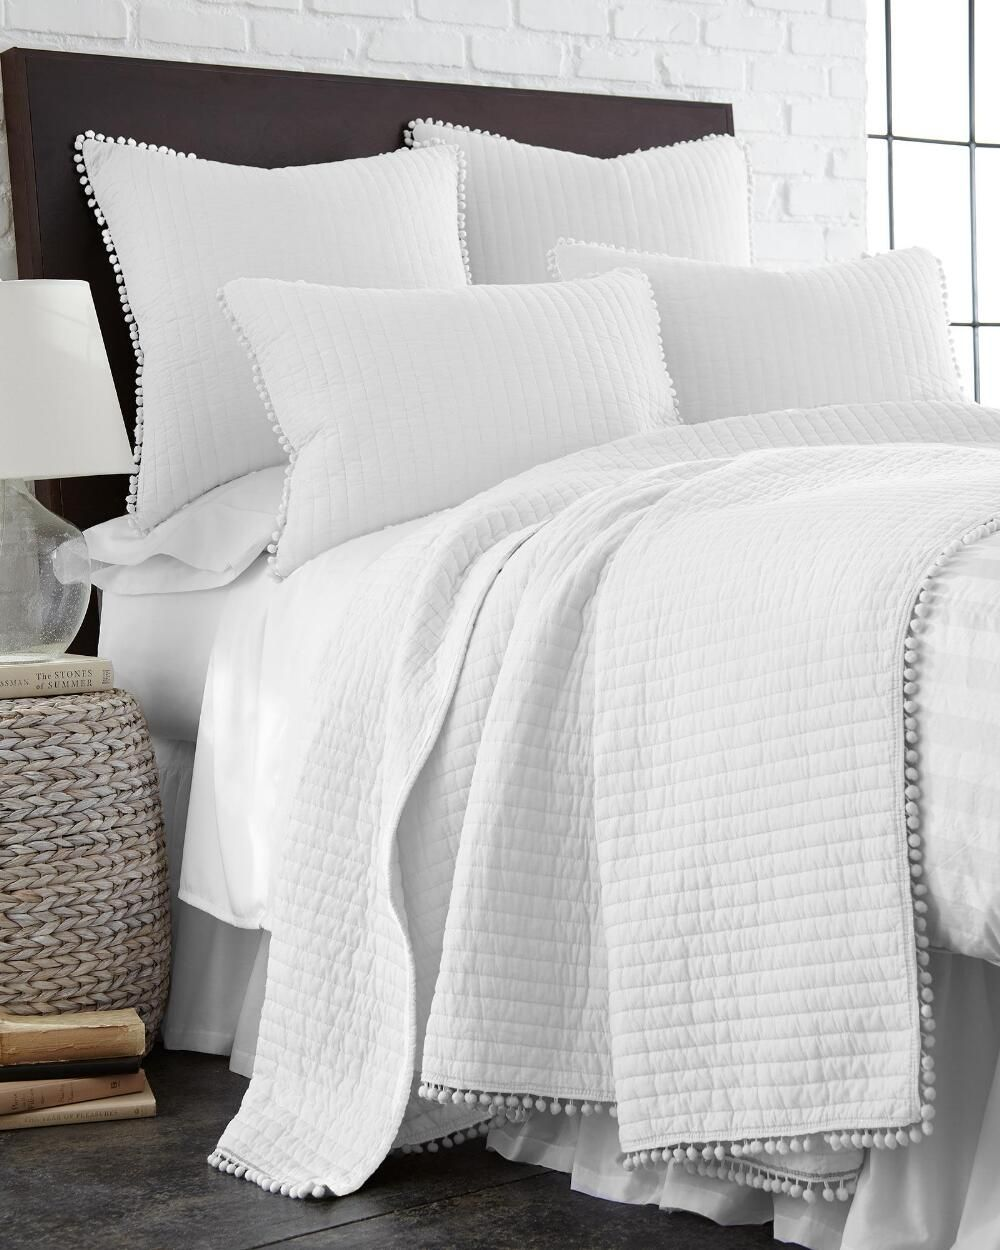 Exclusively Ours Pom Pom White Sham White Quilt Bedding Home